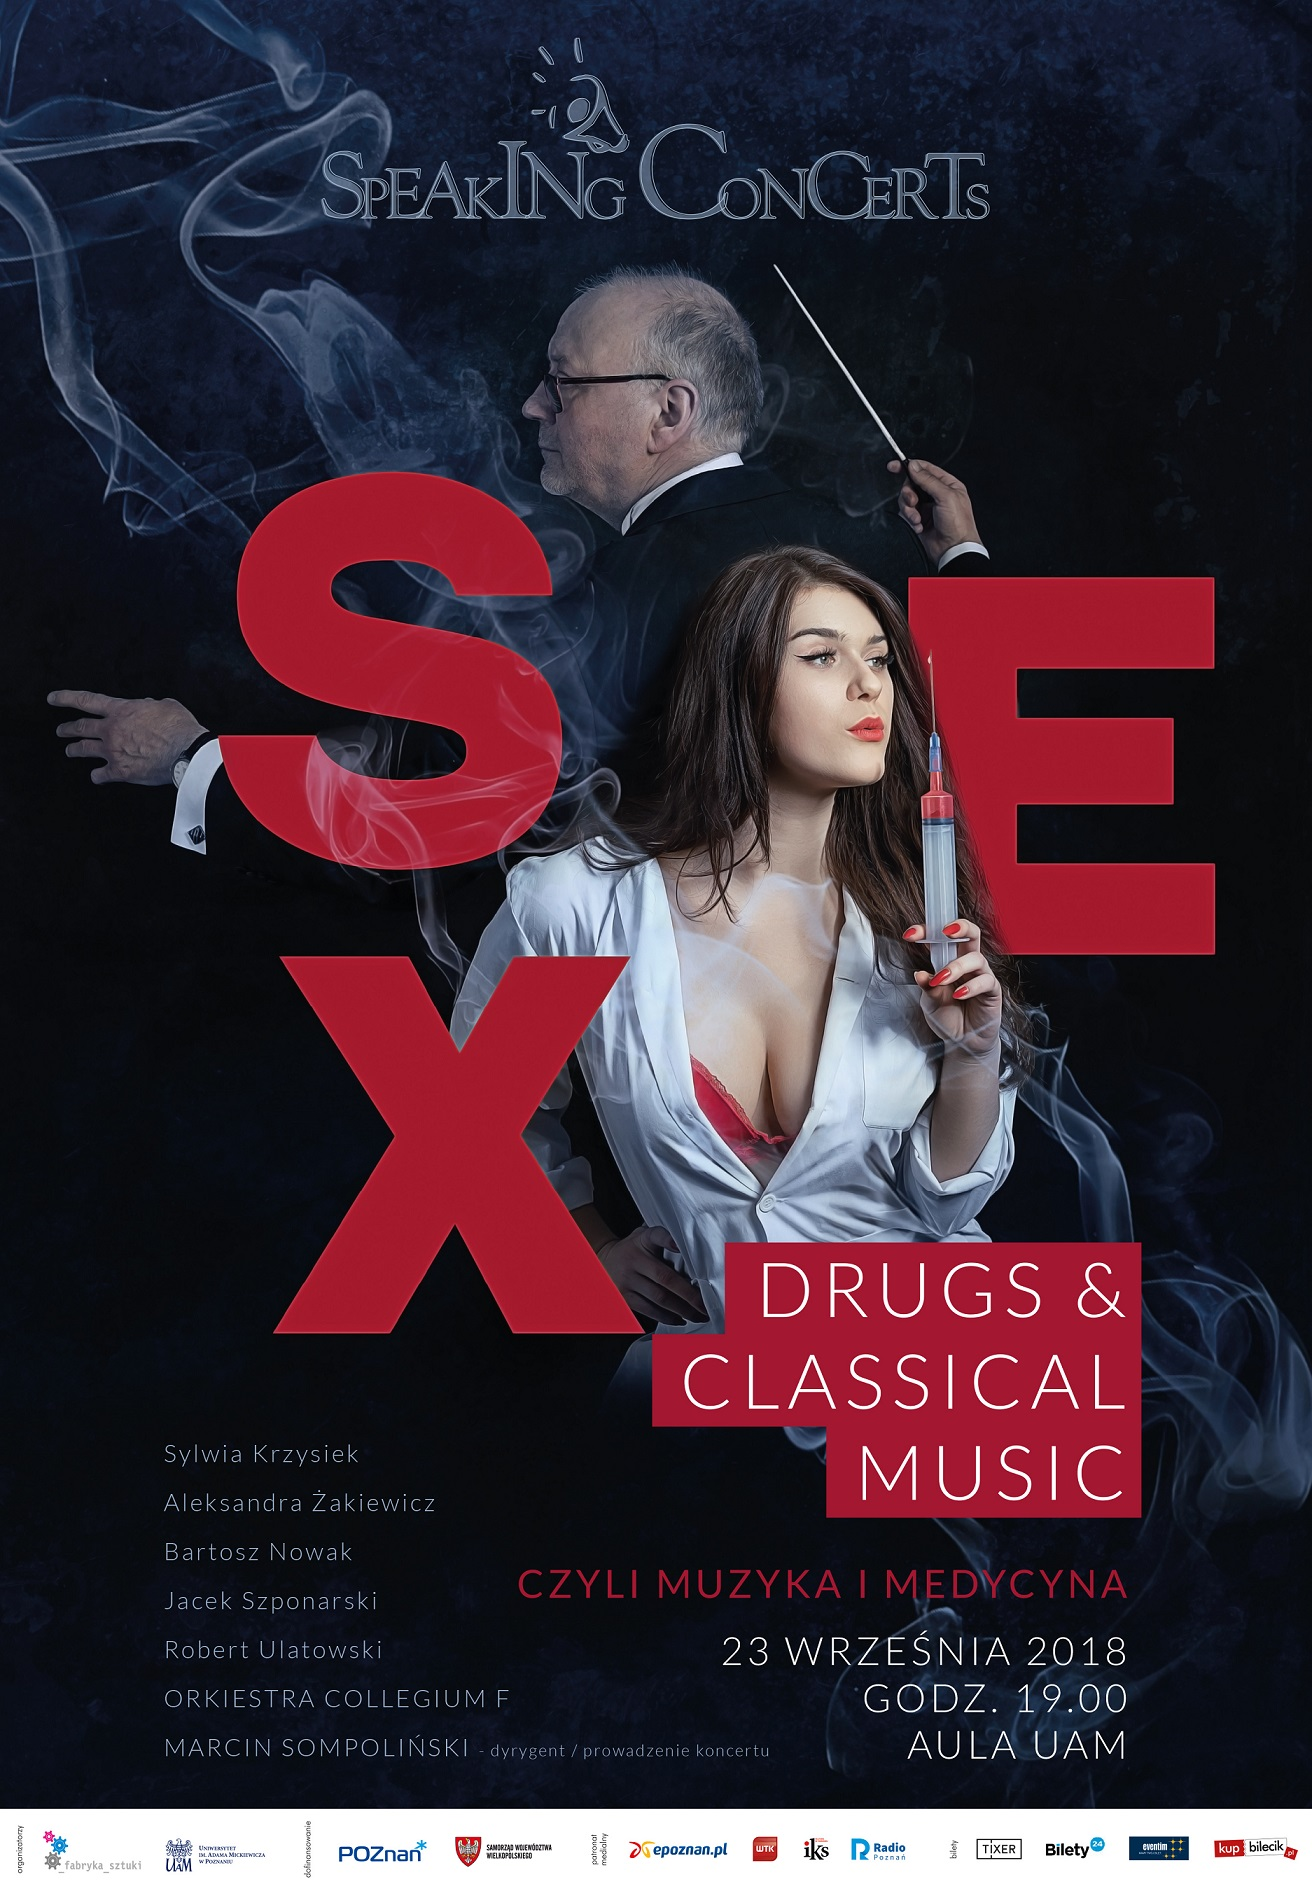 plakat b1 sex drugs wrzesien